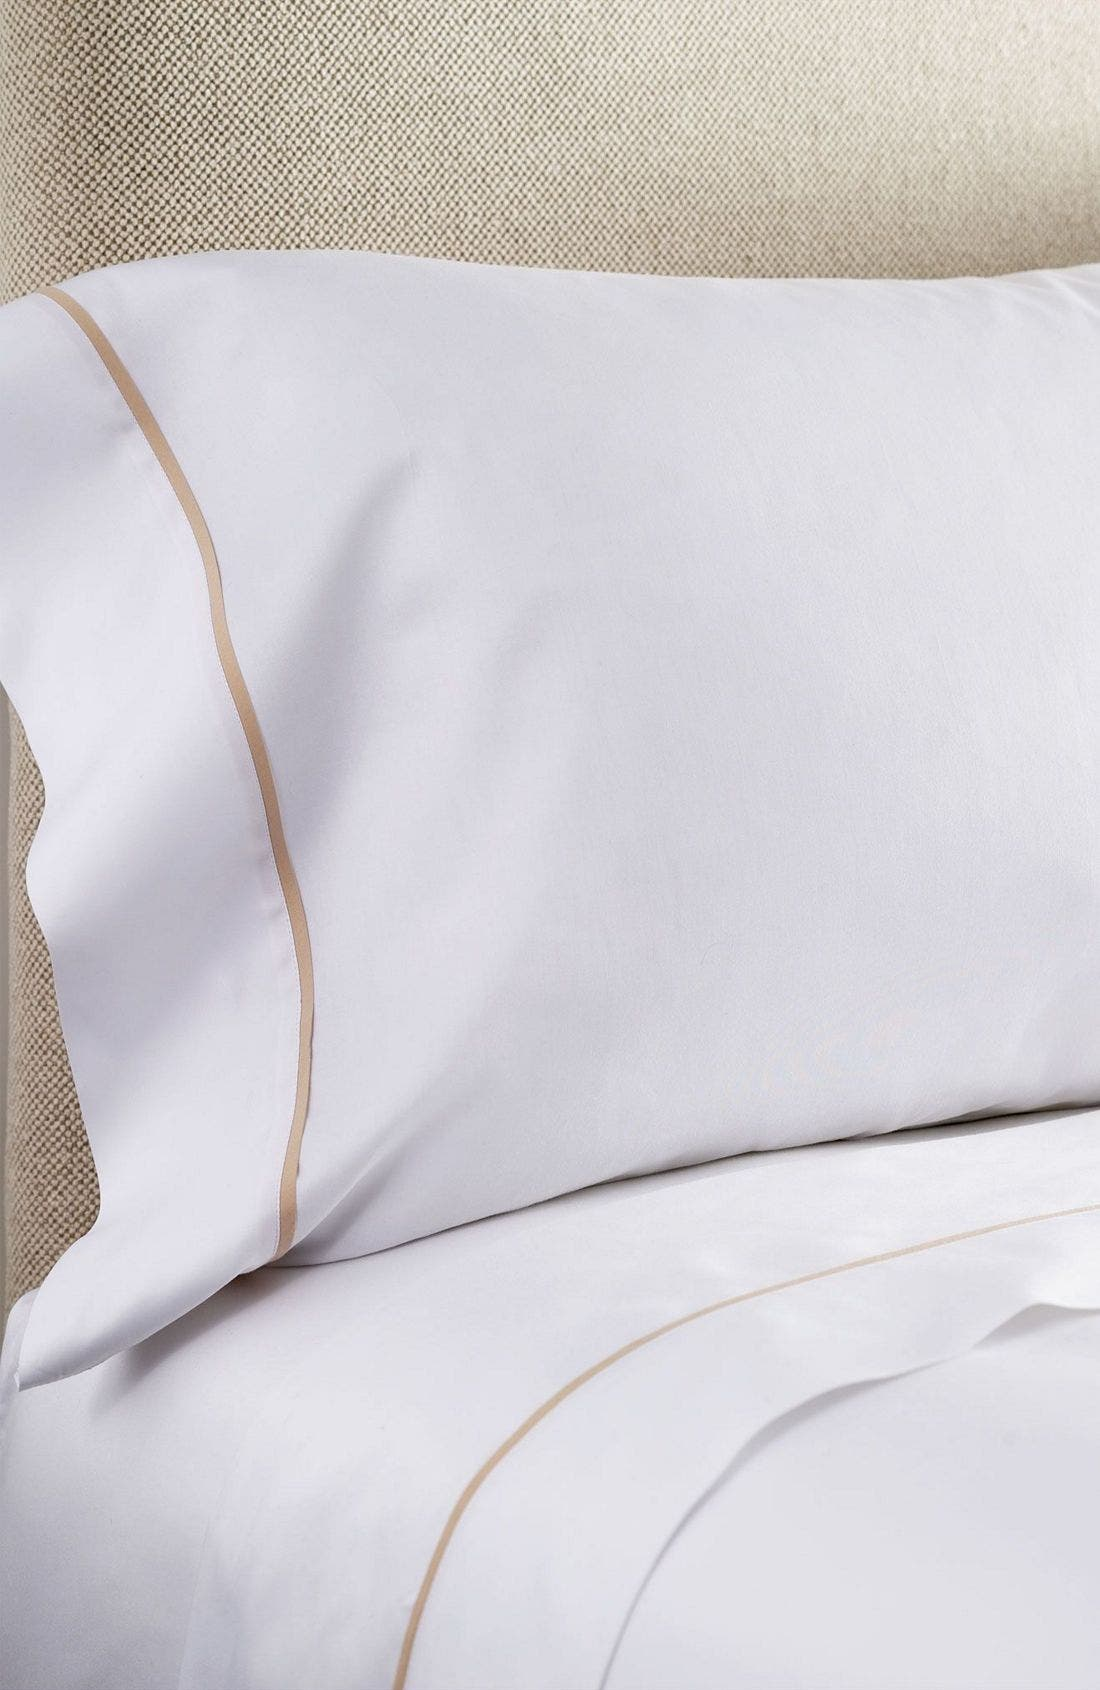 Alternate Image 1 Selected - Westin Heavenly Bed® Set of 2 300 Thread Count Egyptian Cotton Luxe Pillowcase